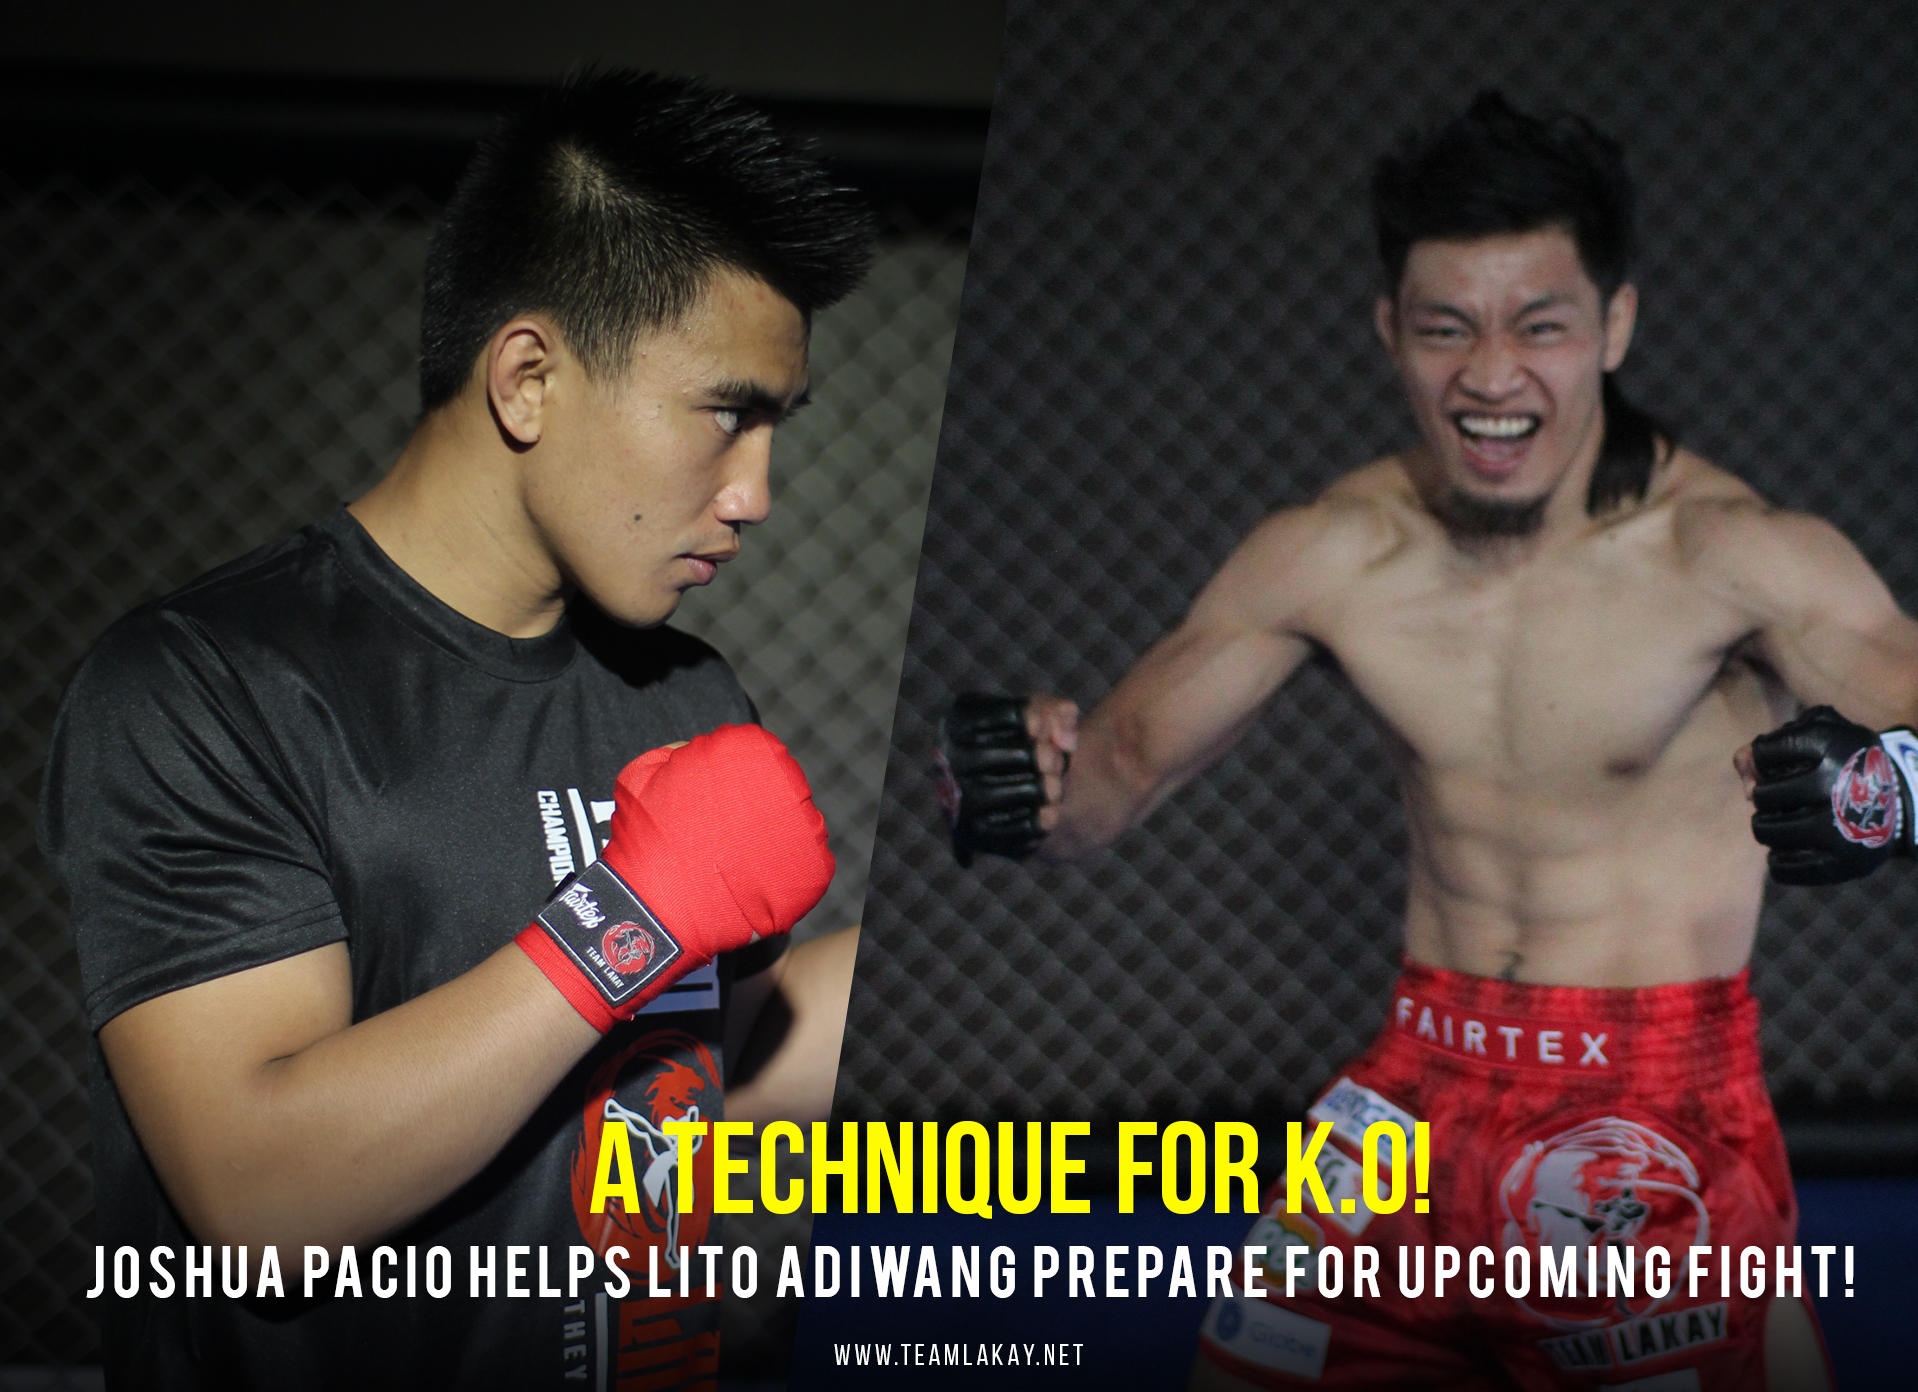 """""""Lito will pull one of the techniques we've been practicing"""", says Pacio as he helps Lito Adiwang on upcoming match with Jarred Brooks"""